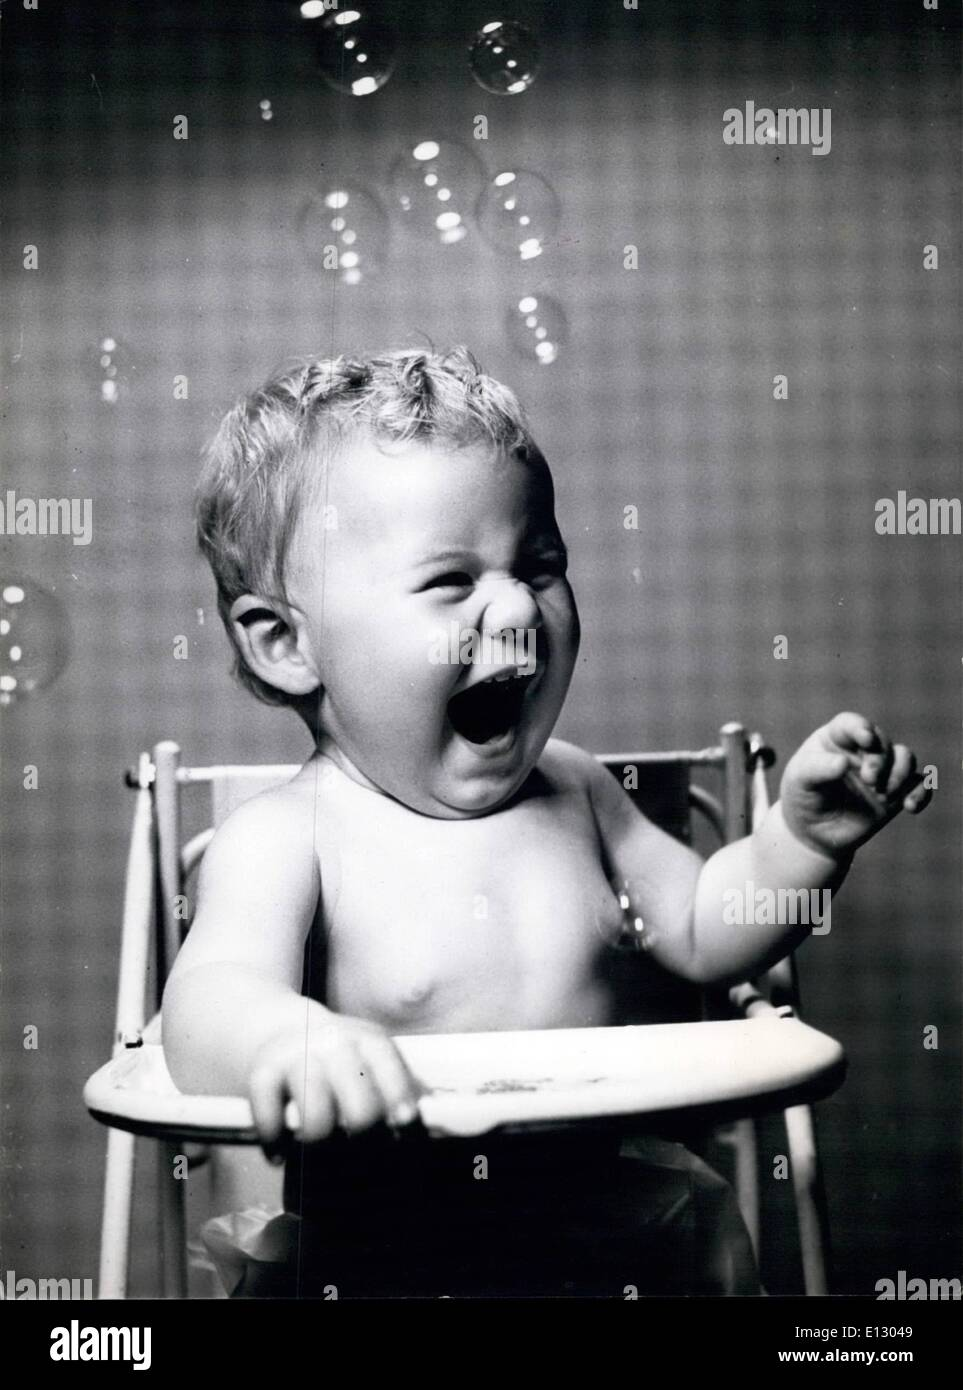 Feb. 26, 2012 - Susan roars with laughter, as the coloured bubbles float round her head and tickle her nose. - Stock Image